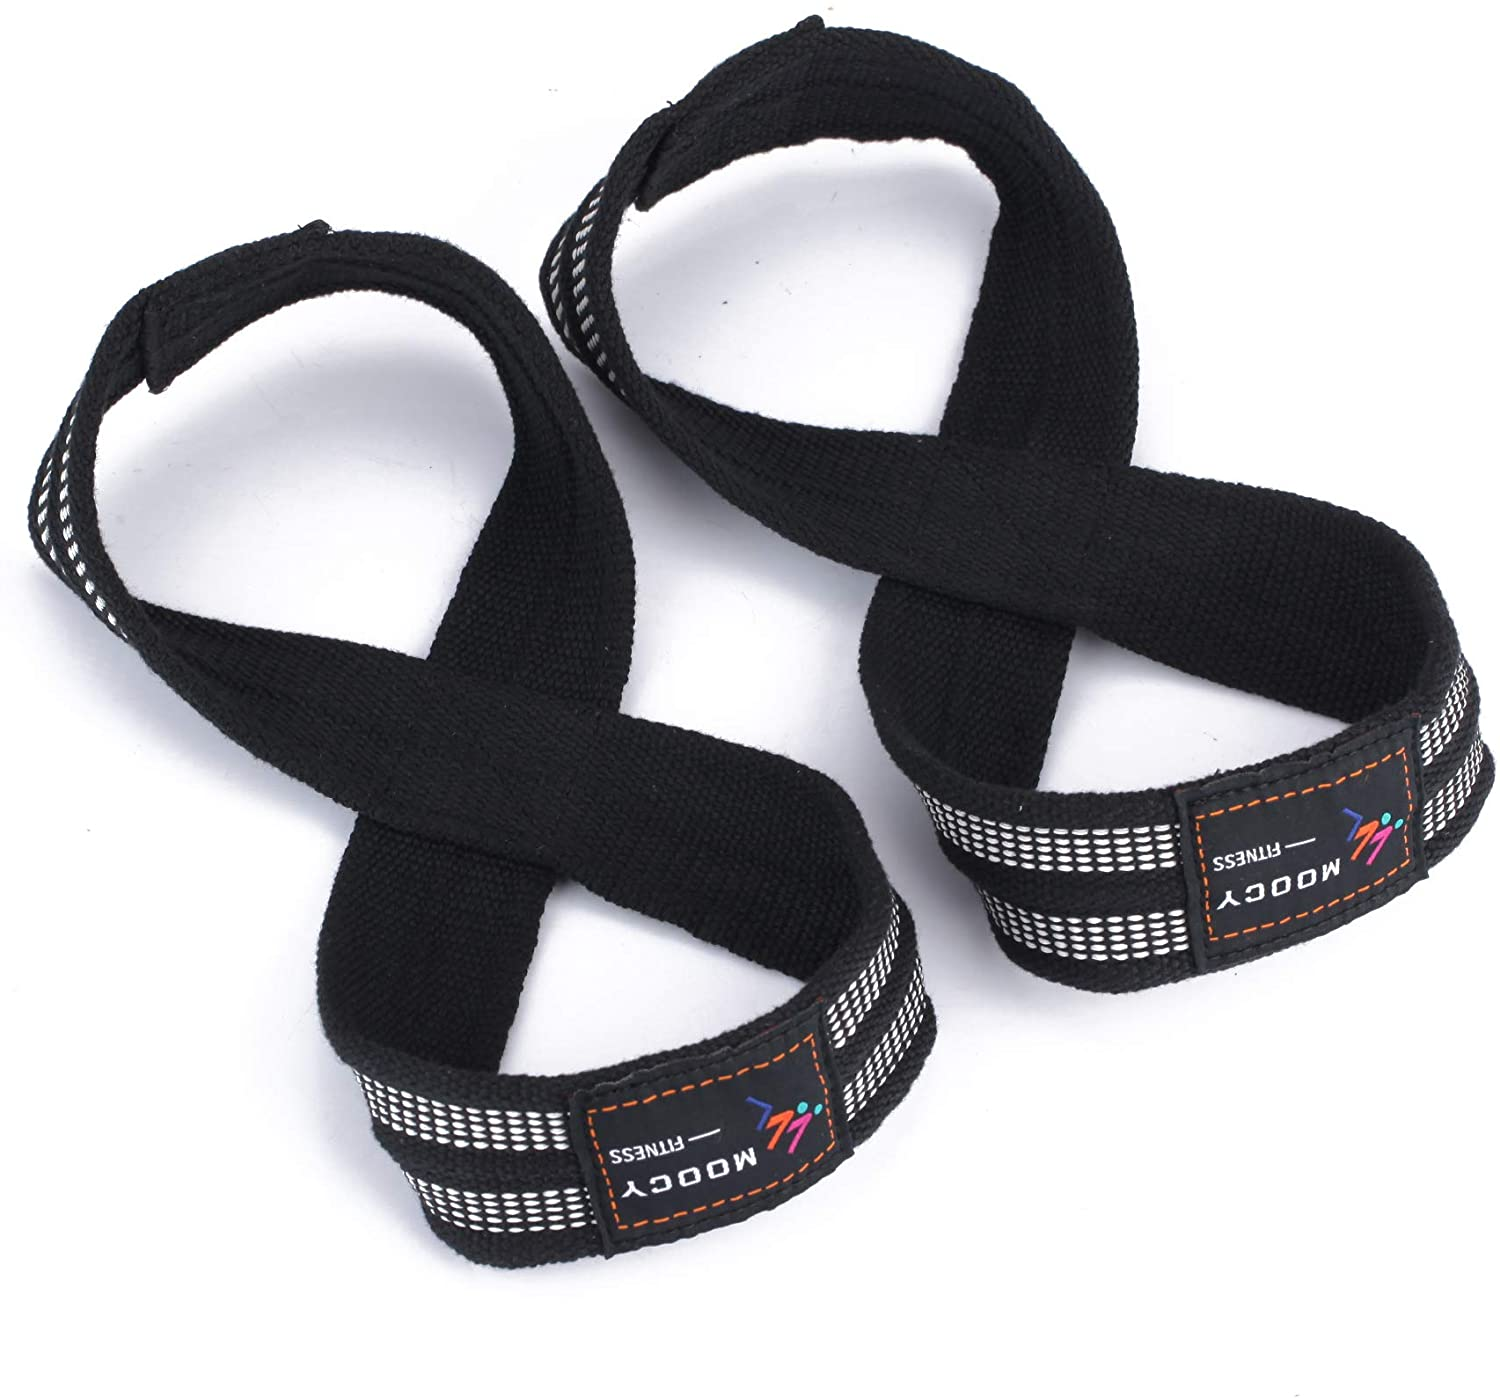 Ikerall Padded Figure 8 Lifting Straps - Weightlifting Straps - Figure 8 Straps - Wrist Straps for Men, Women, Crossfit, Weight Lifting, Deadlifts